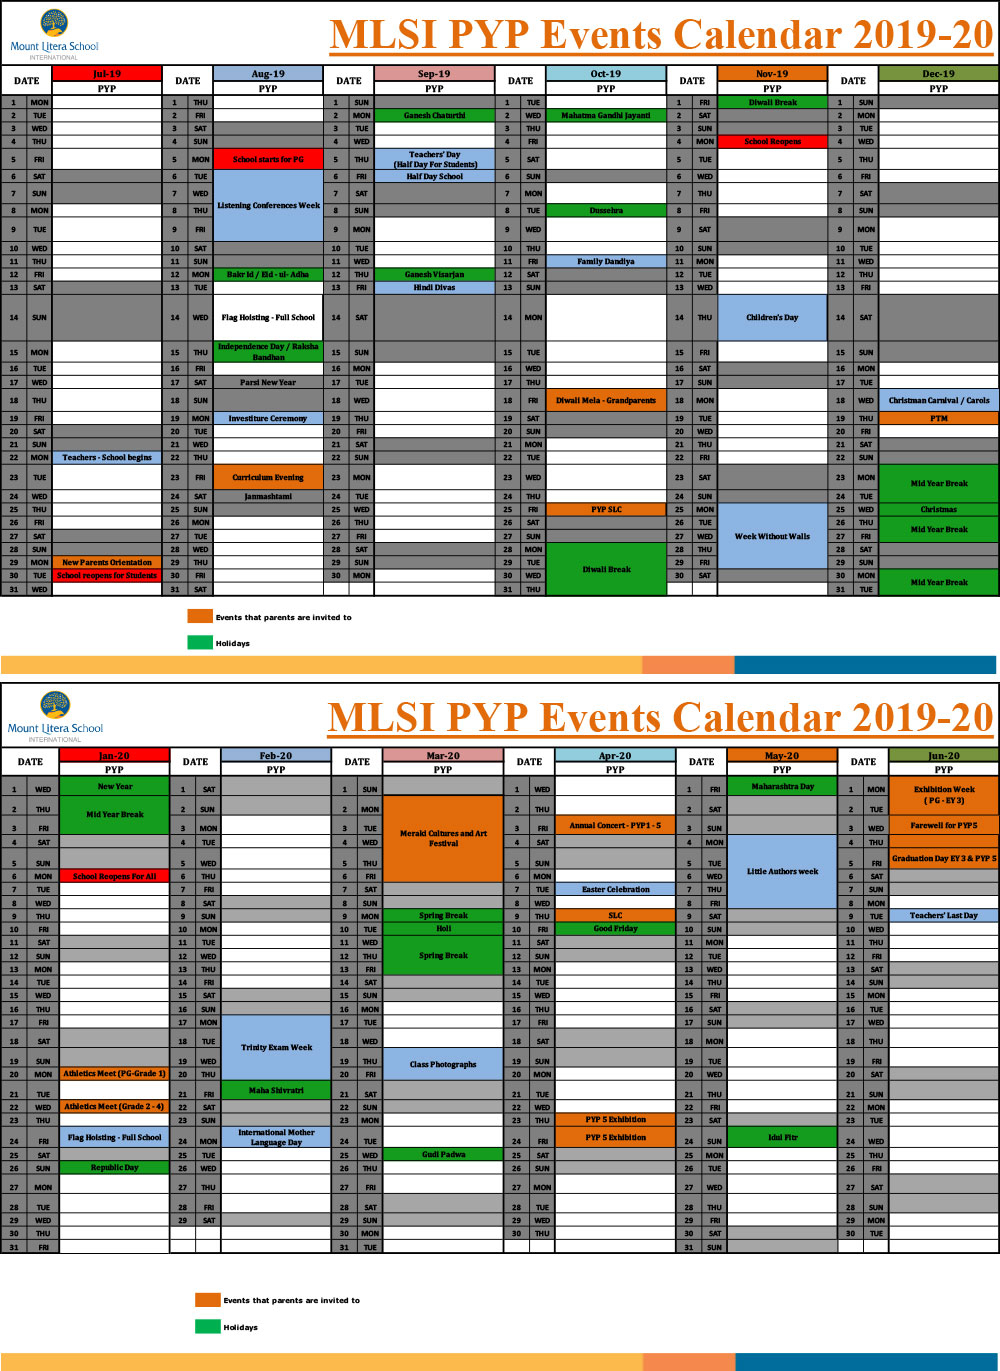 School Calendar – Mount Litera School International regarding Uti School Calendar